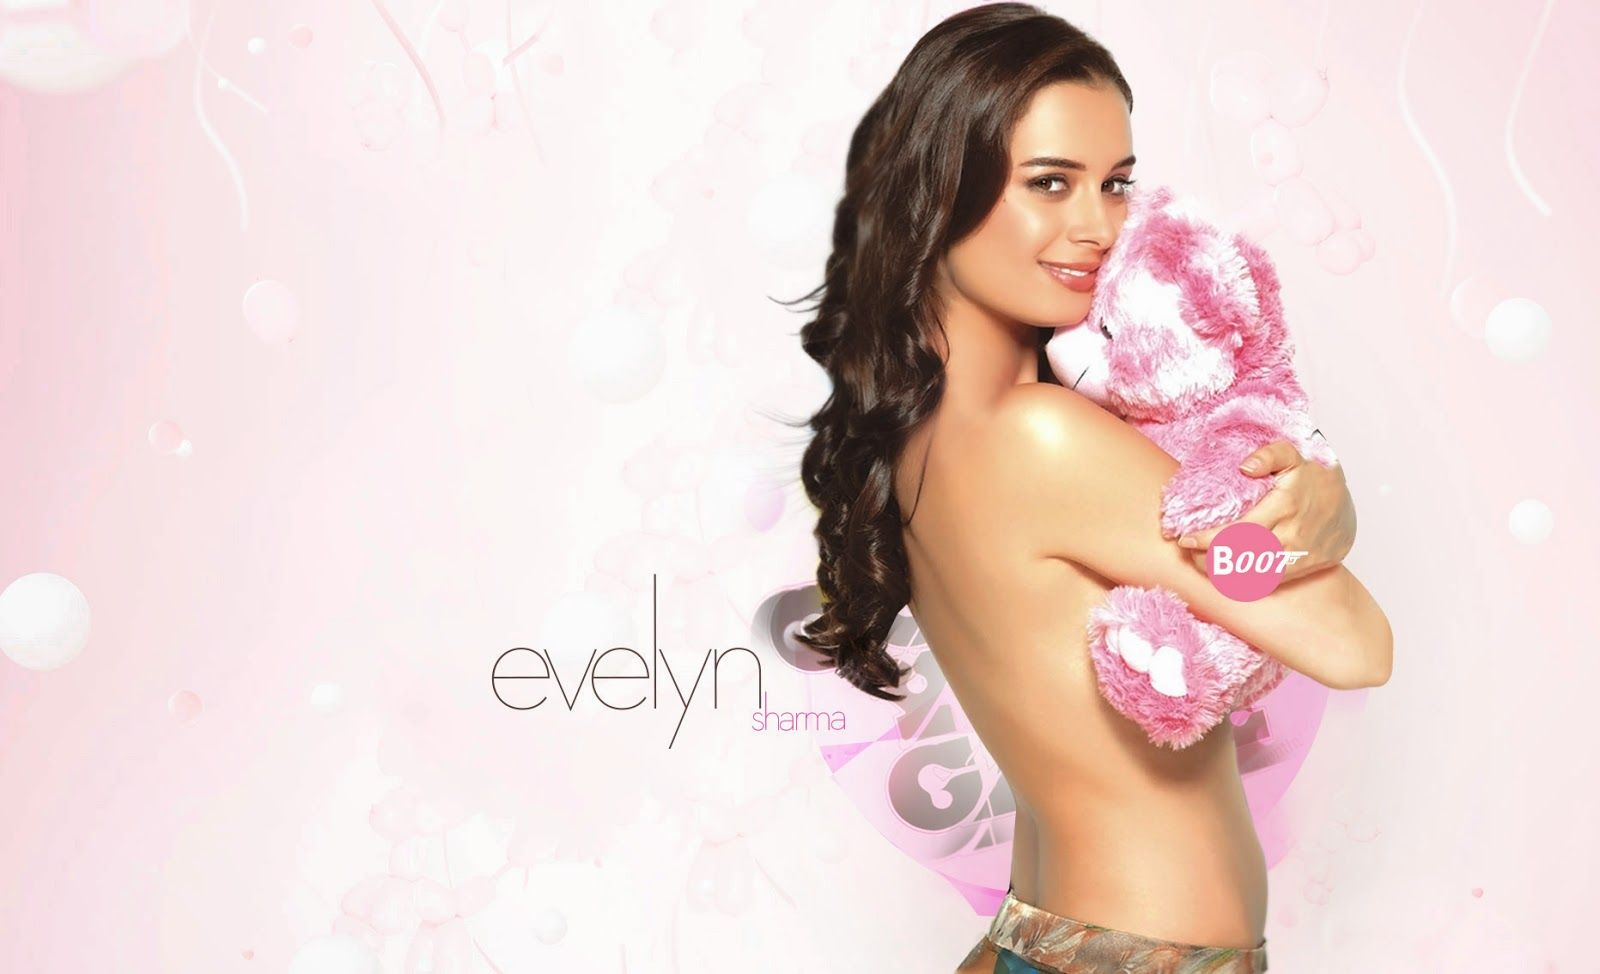 Evelyn Sharma picture - HD gallery